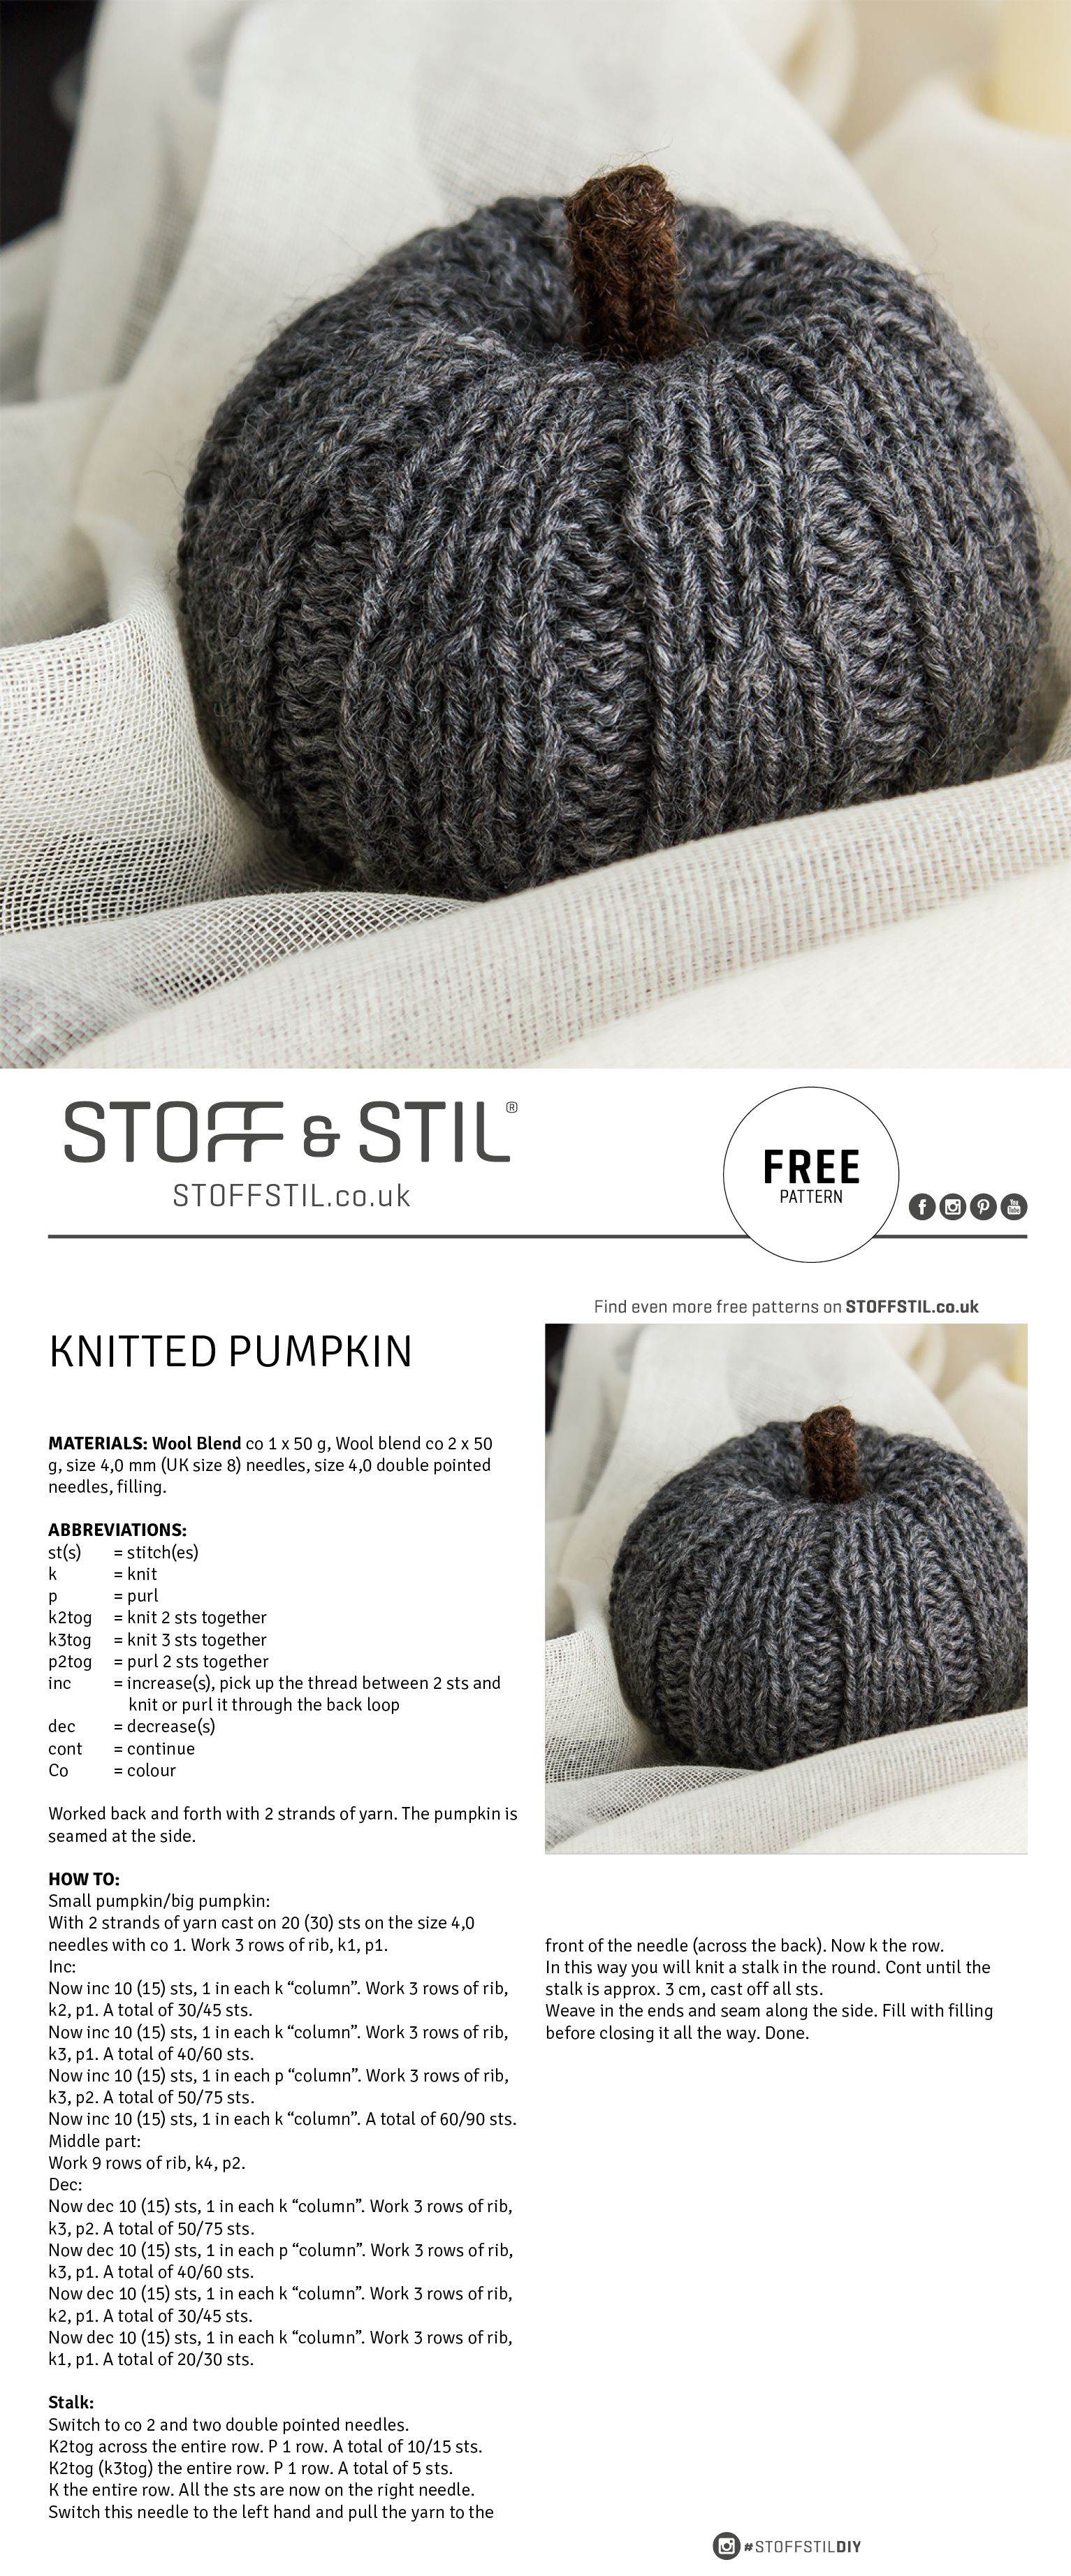 Free pattern for a knitted pumpkin #pumpkin #knitted #halloween ...